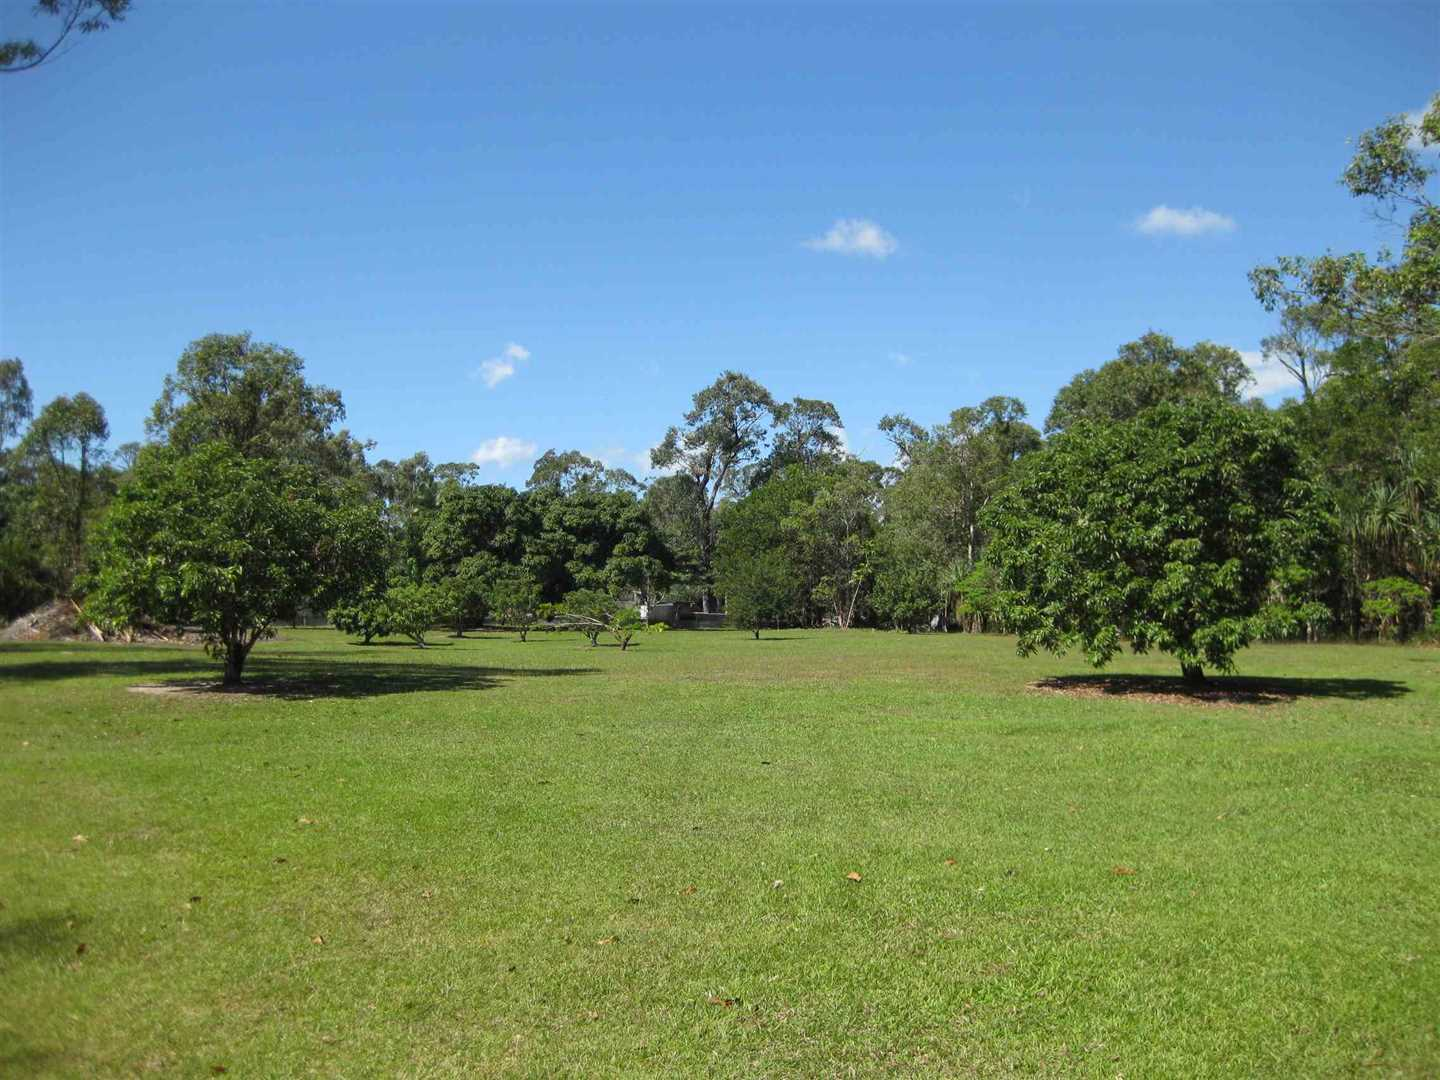 View of part of property showing part of cleared grassed area and some fruit trees, photo 1